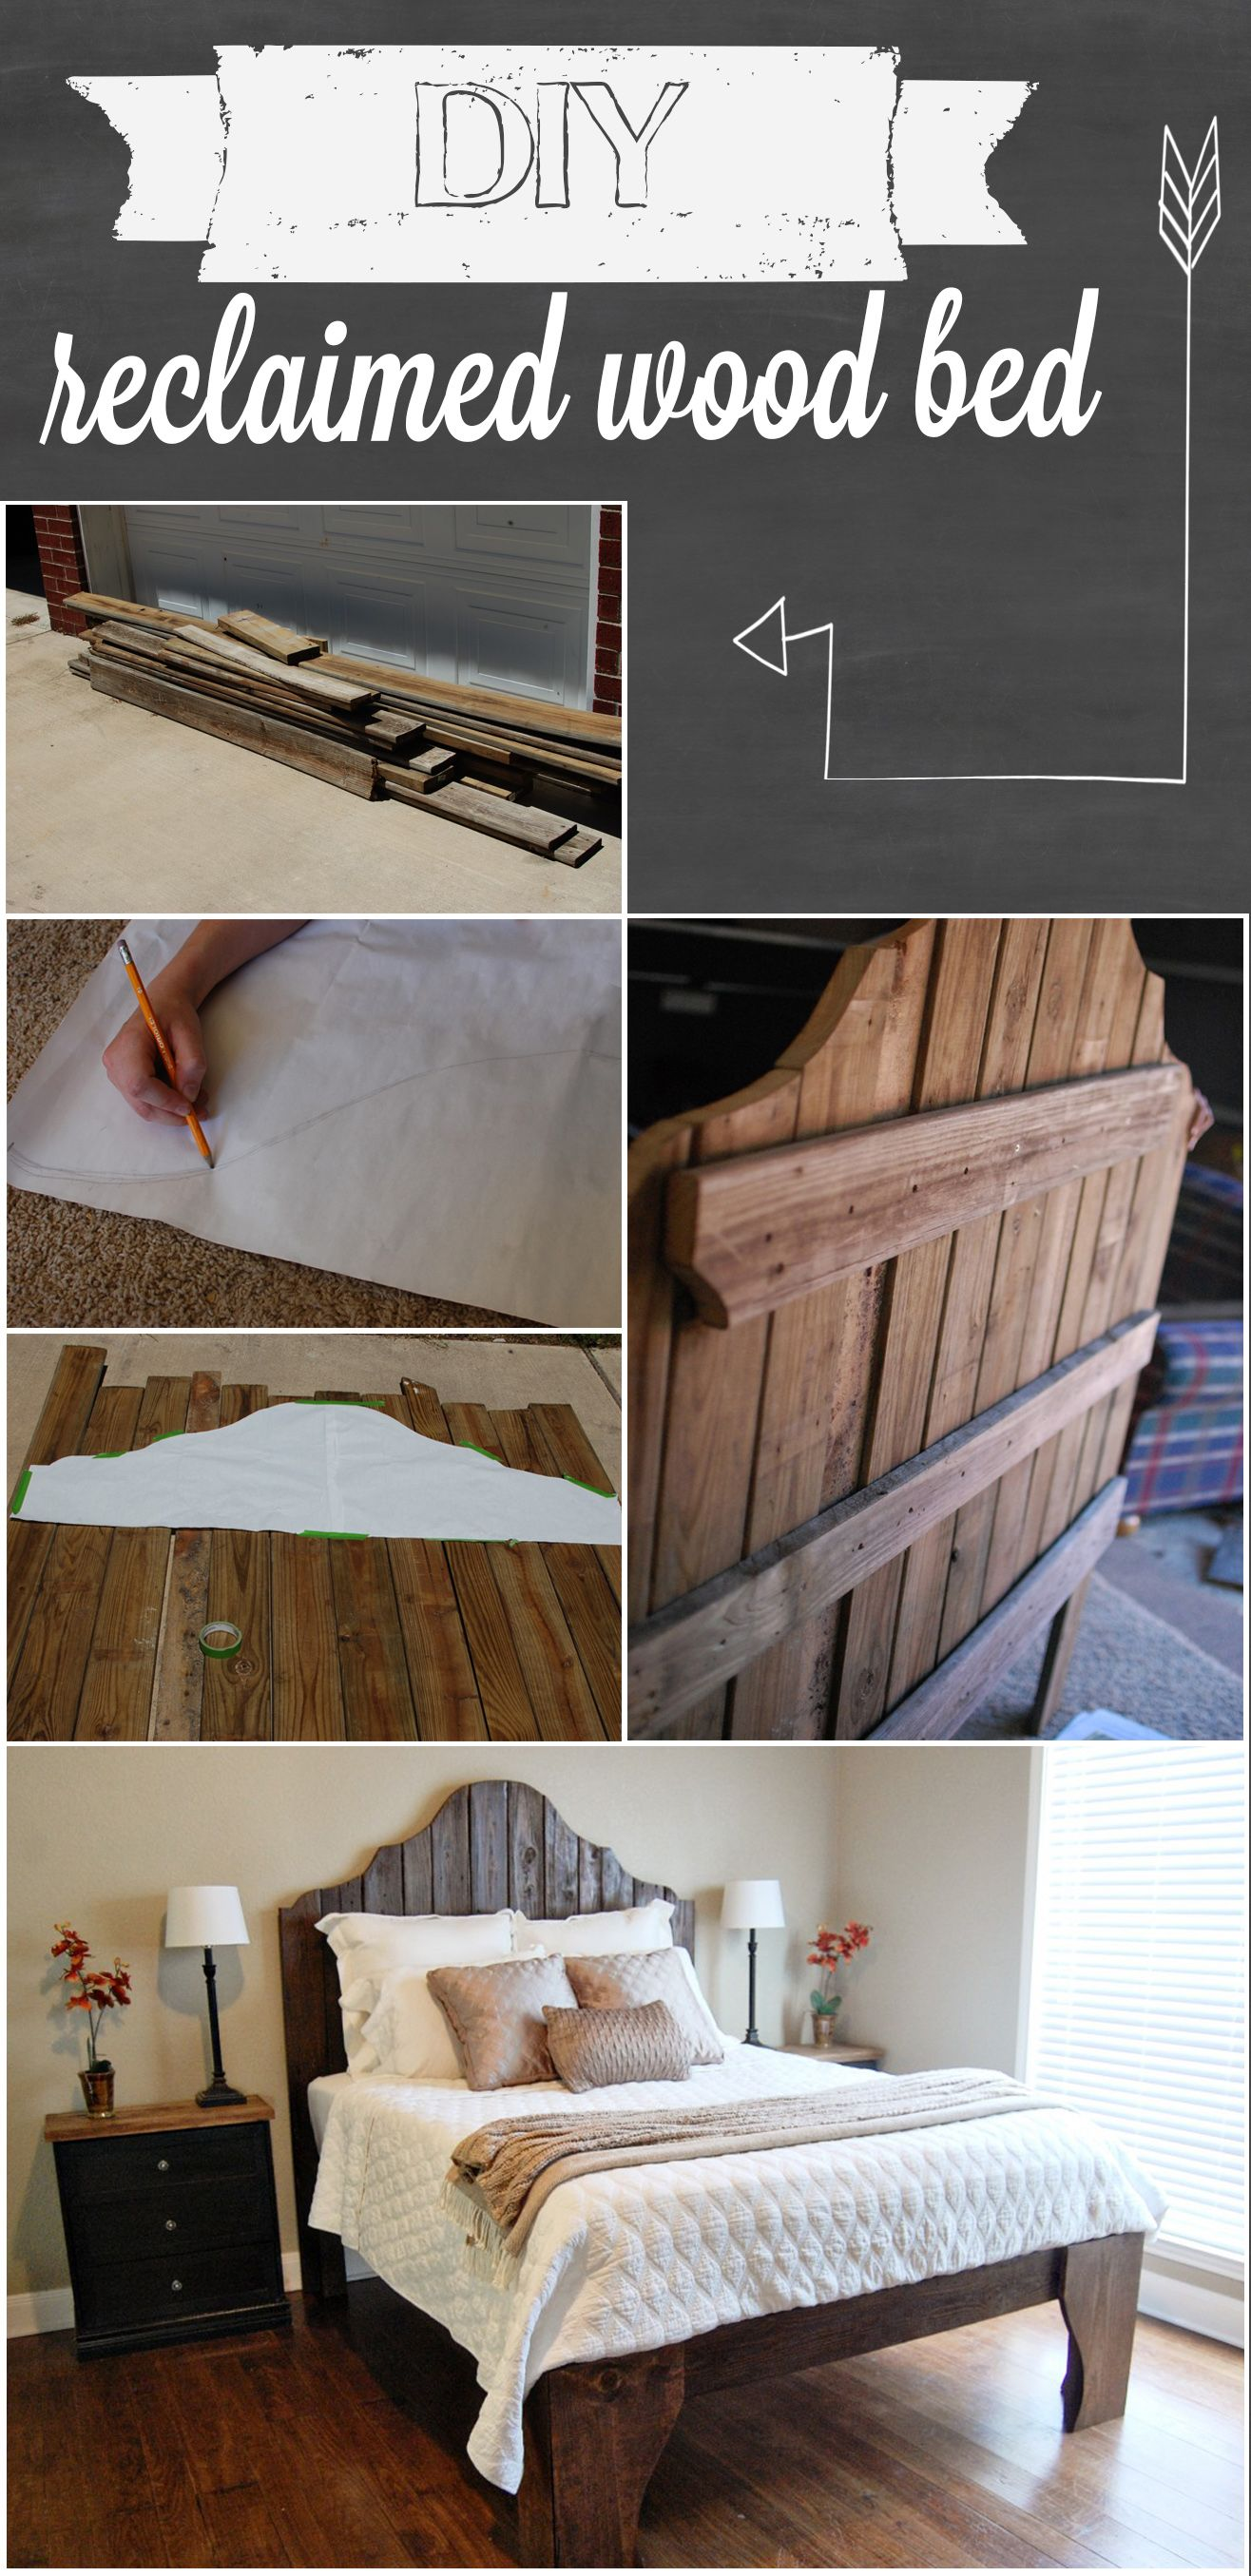 Diy how to build a reclaimed wood bed tutorial shows how this bed